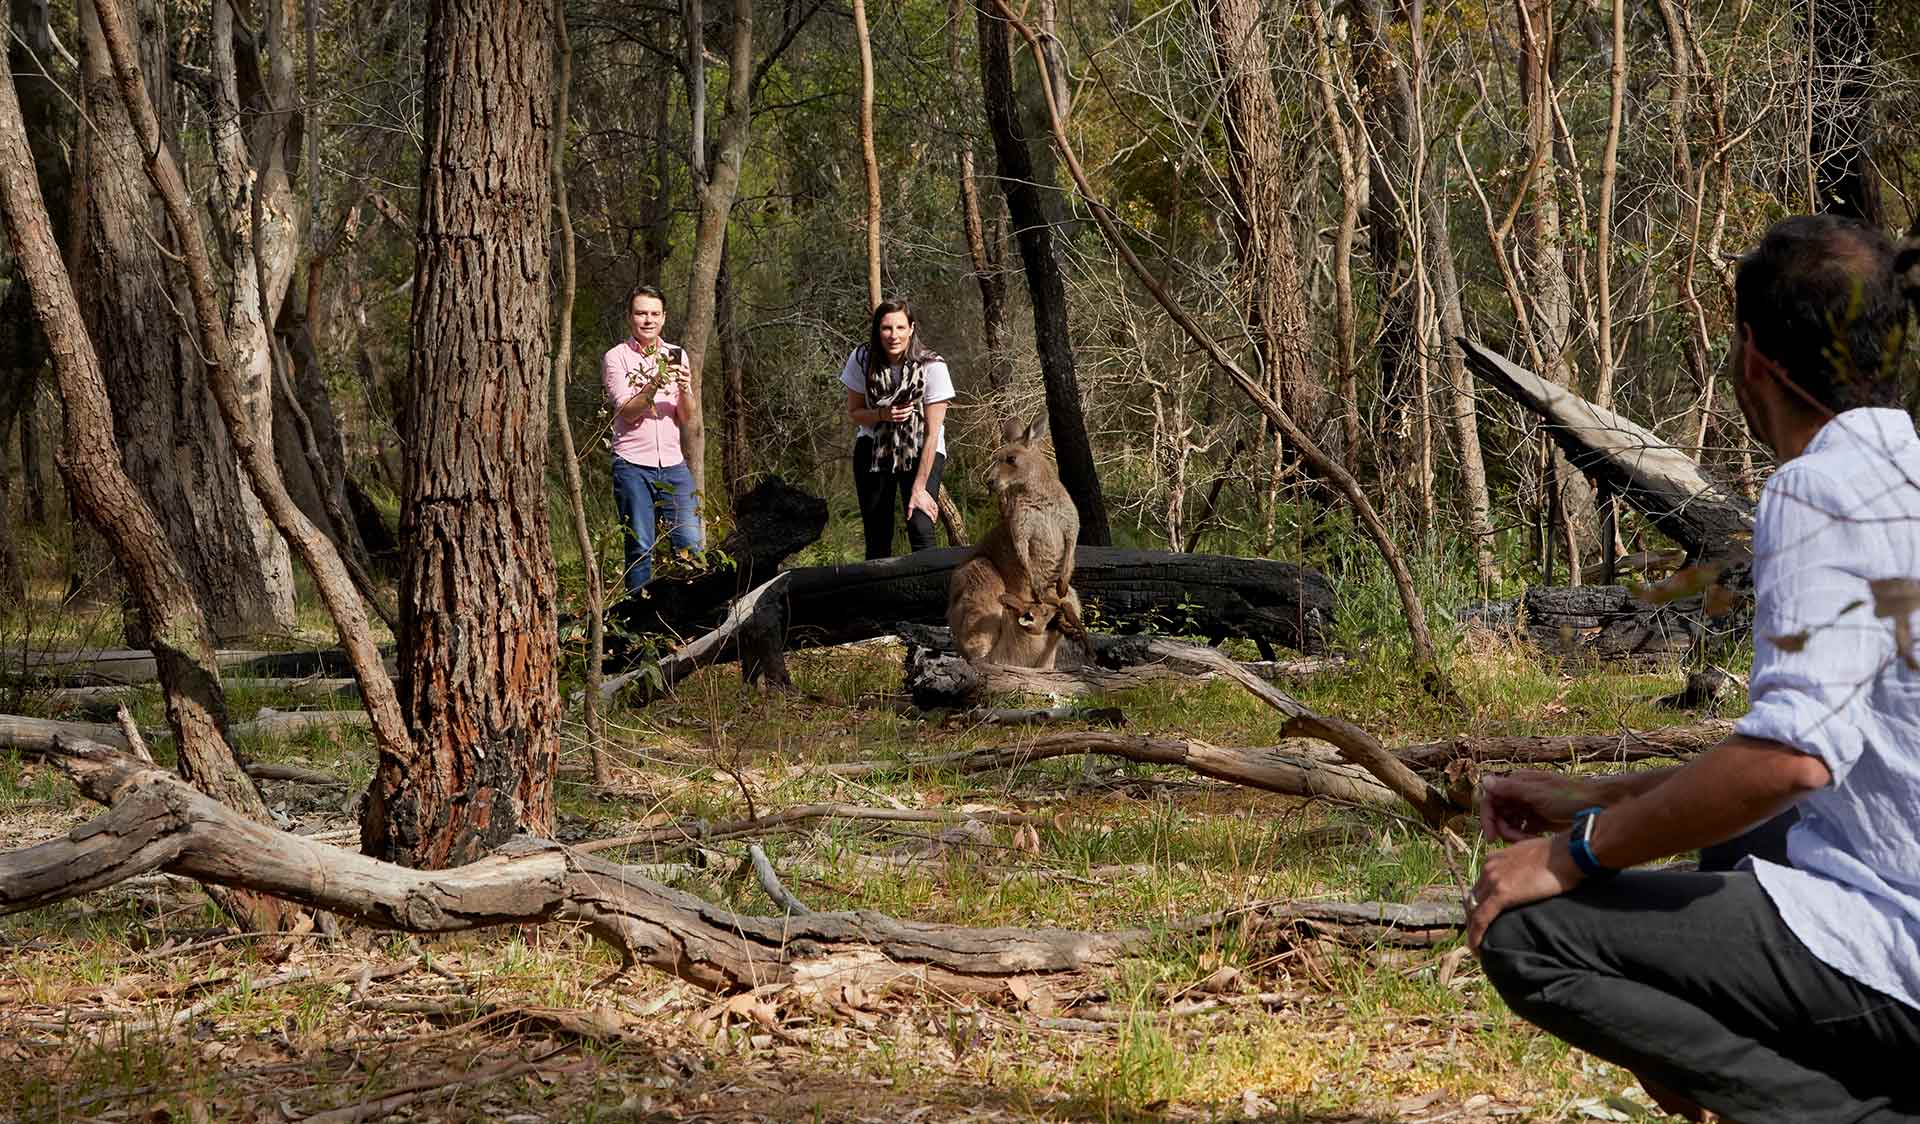 Three friends take a break from their walk to take a photo of a Kangaroo who is equally watching them.